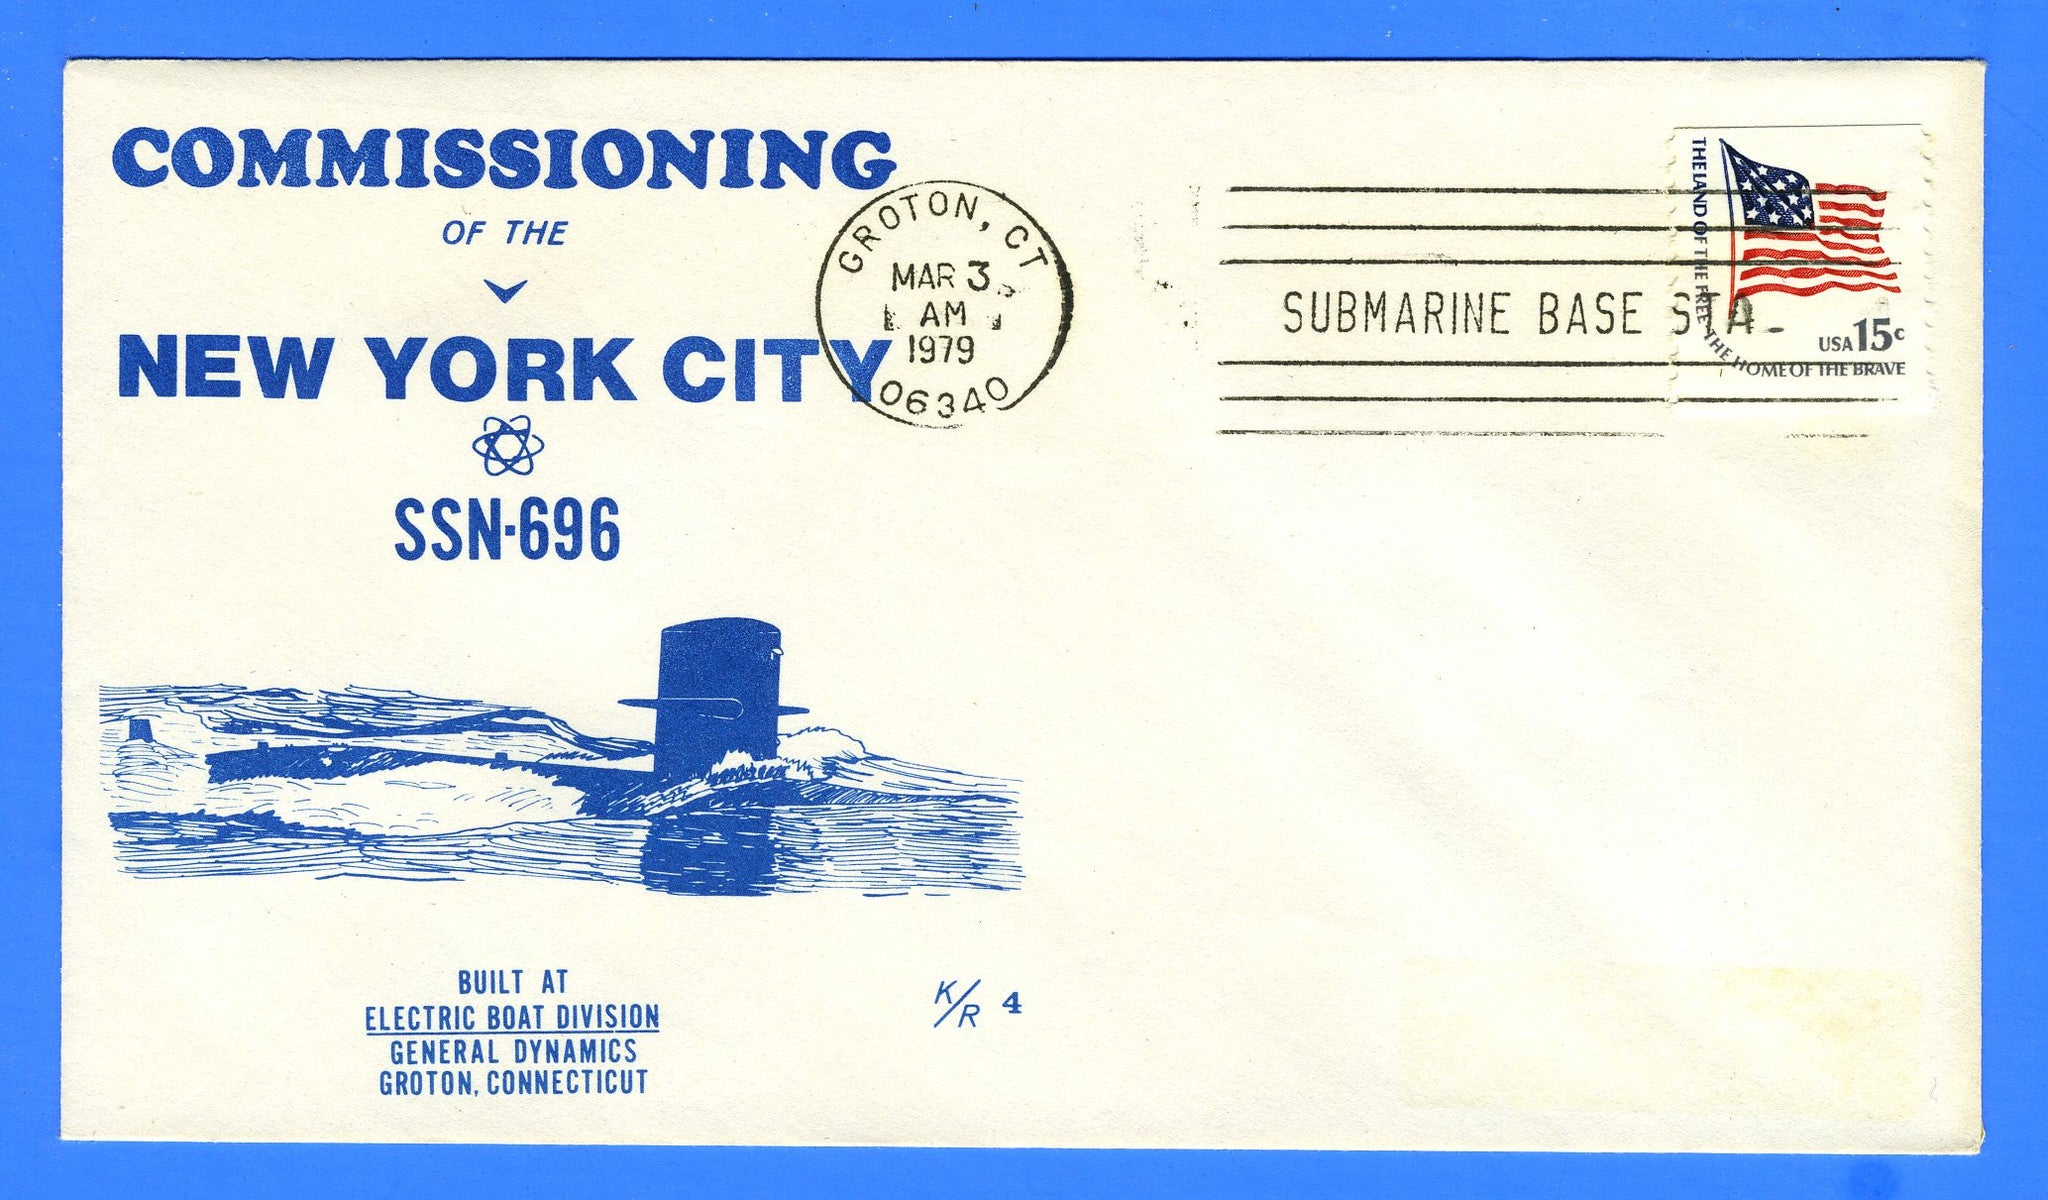 USS New York City SSN-696 Commissioned March 3, 1979